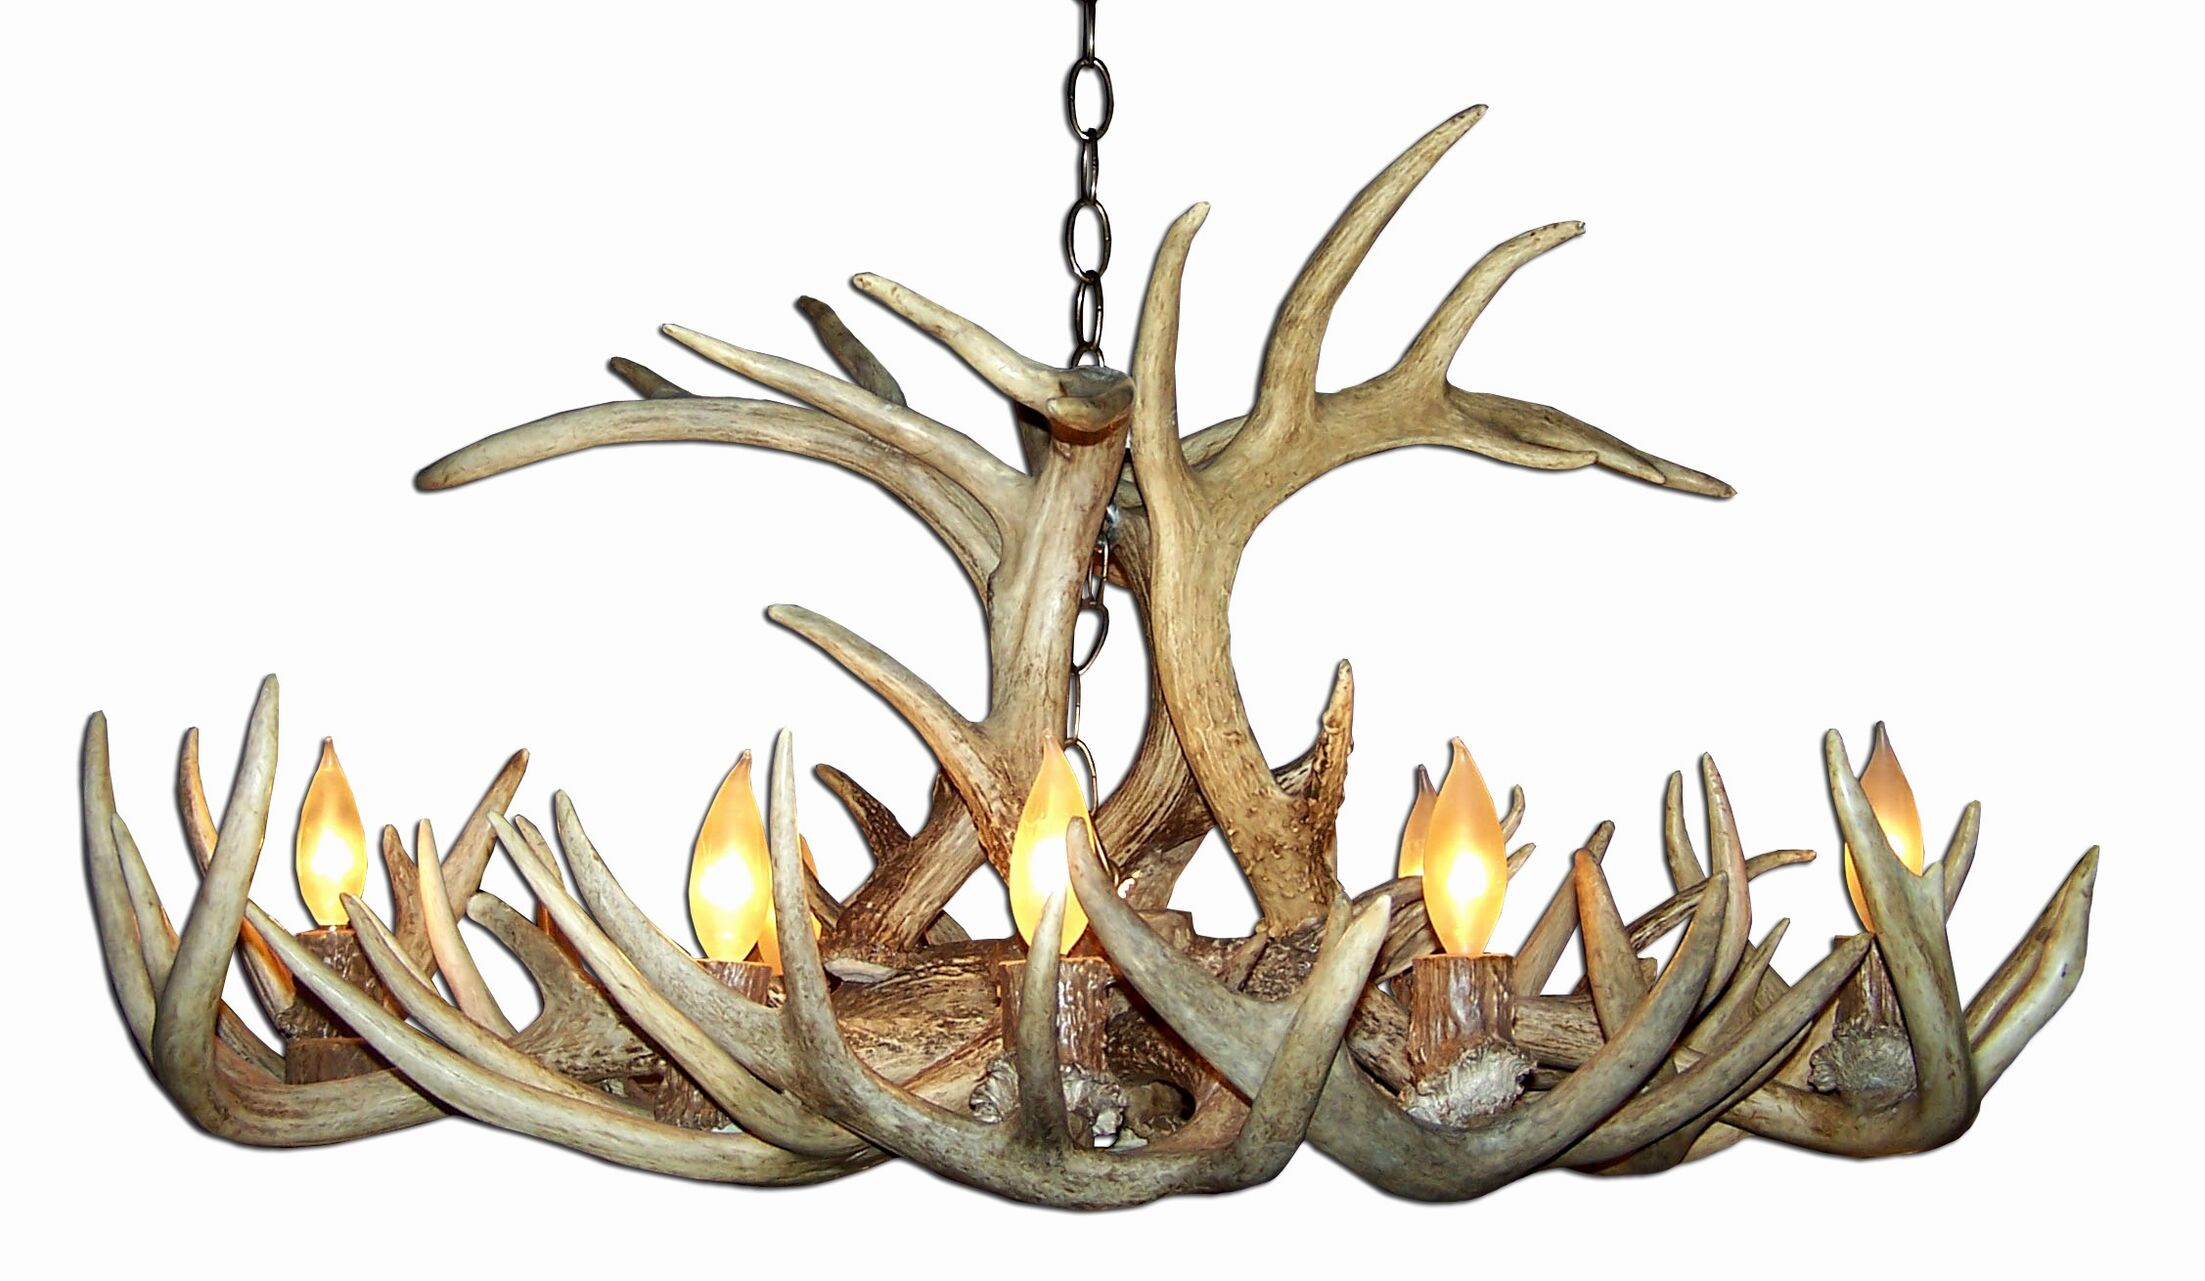 Doliya Antler Whitetail Oblong 8-Light We have associated to option Chandelier Finish: Black/Natural Brown, Shade Included: No, Shade Color: No Shade